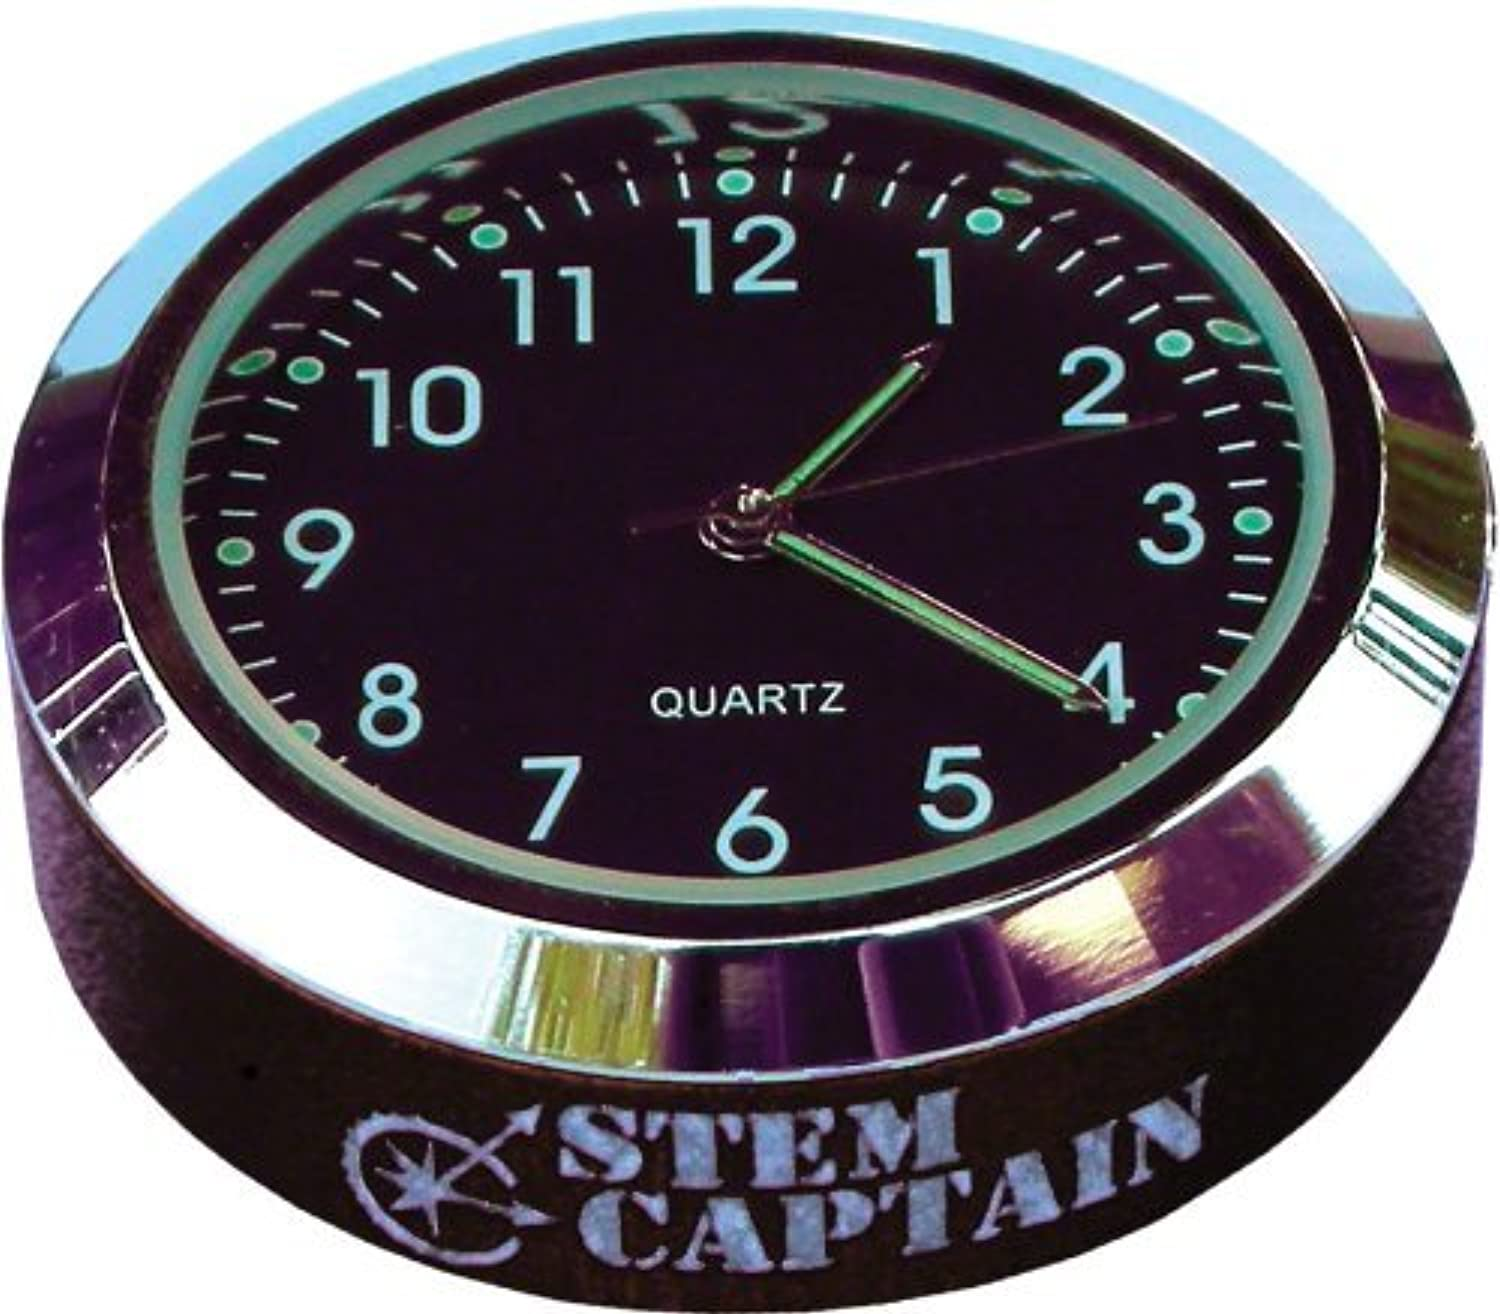 Stemcaptain Head Anteil AHD Kap Clock by Stem Captain